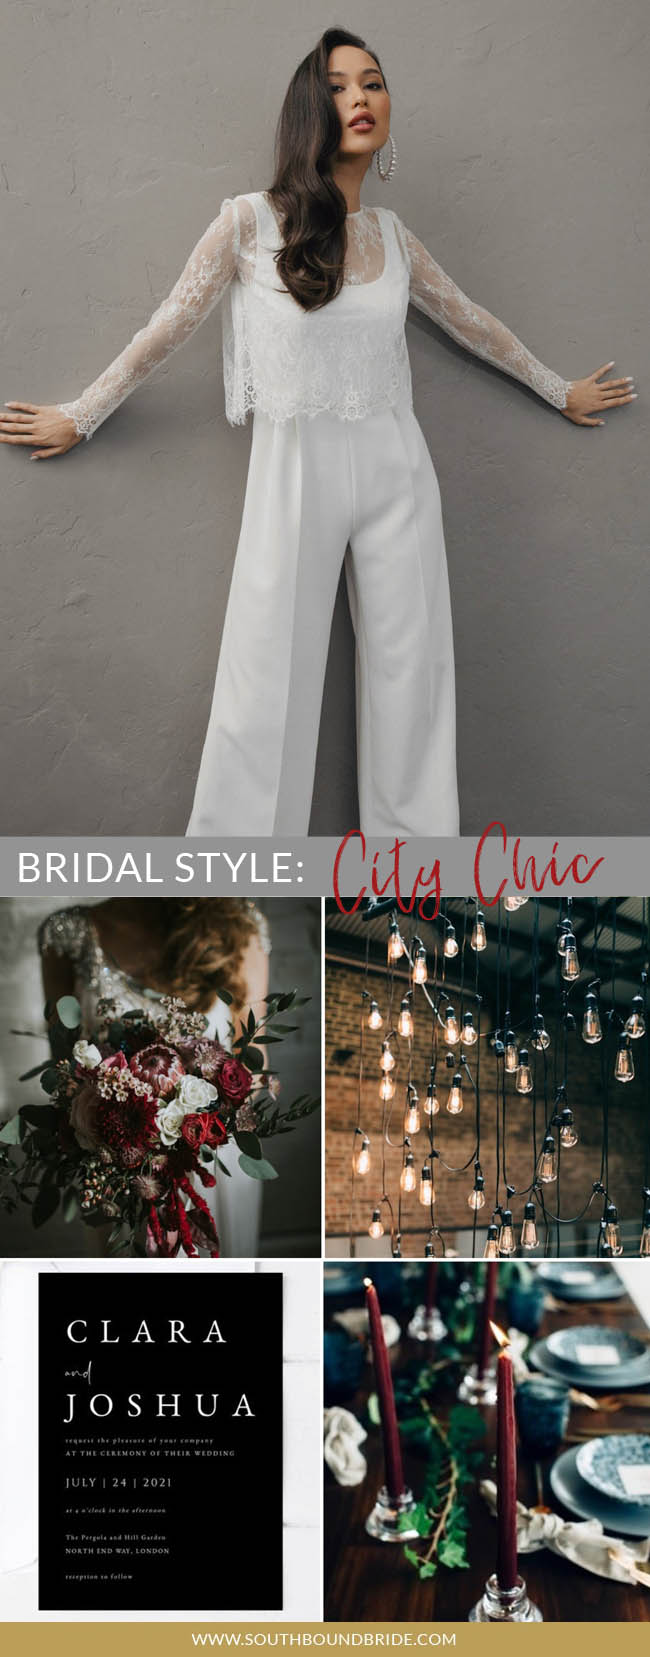 What's Your Bridal Style? City Chic